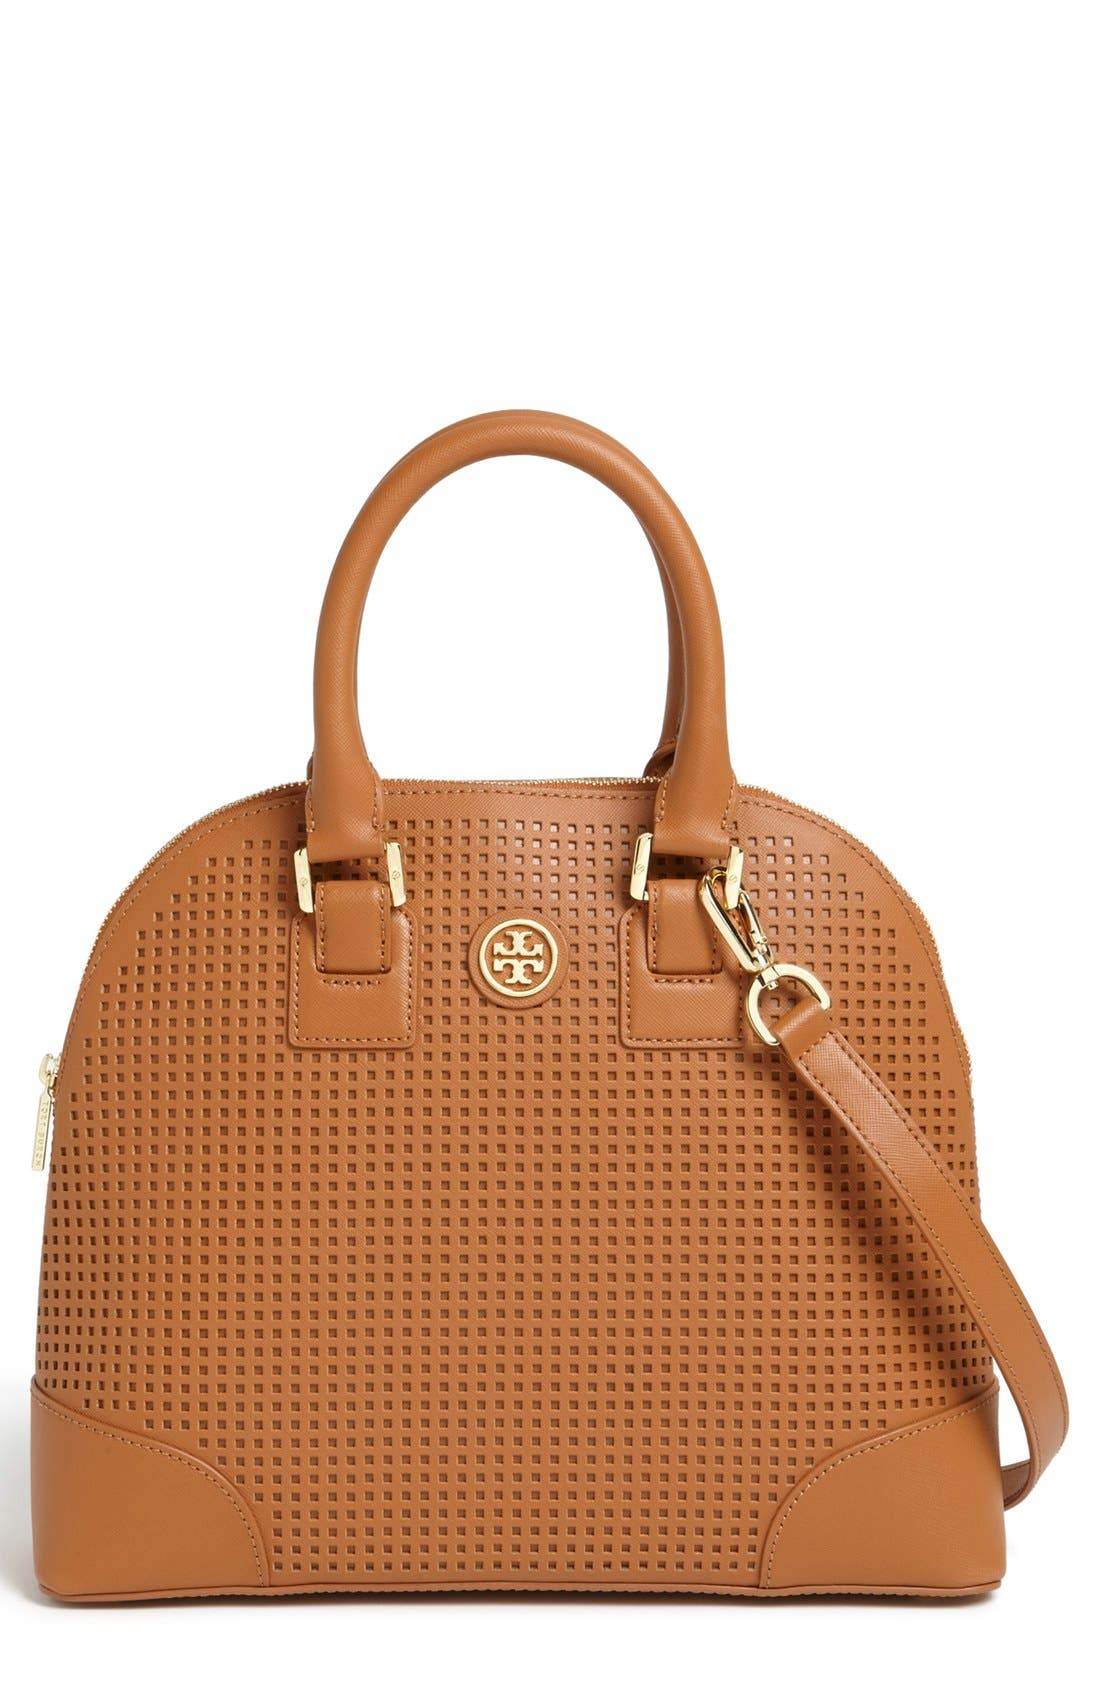 Main Image - Tory Burch 'Robinson' Perforated Leather Dome Satchel